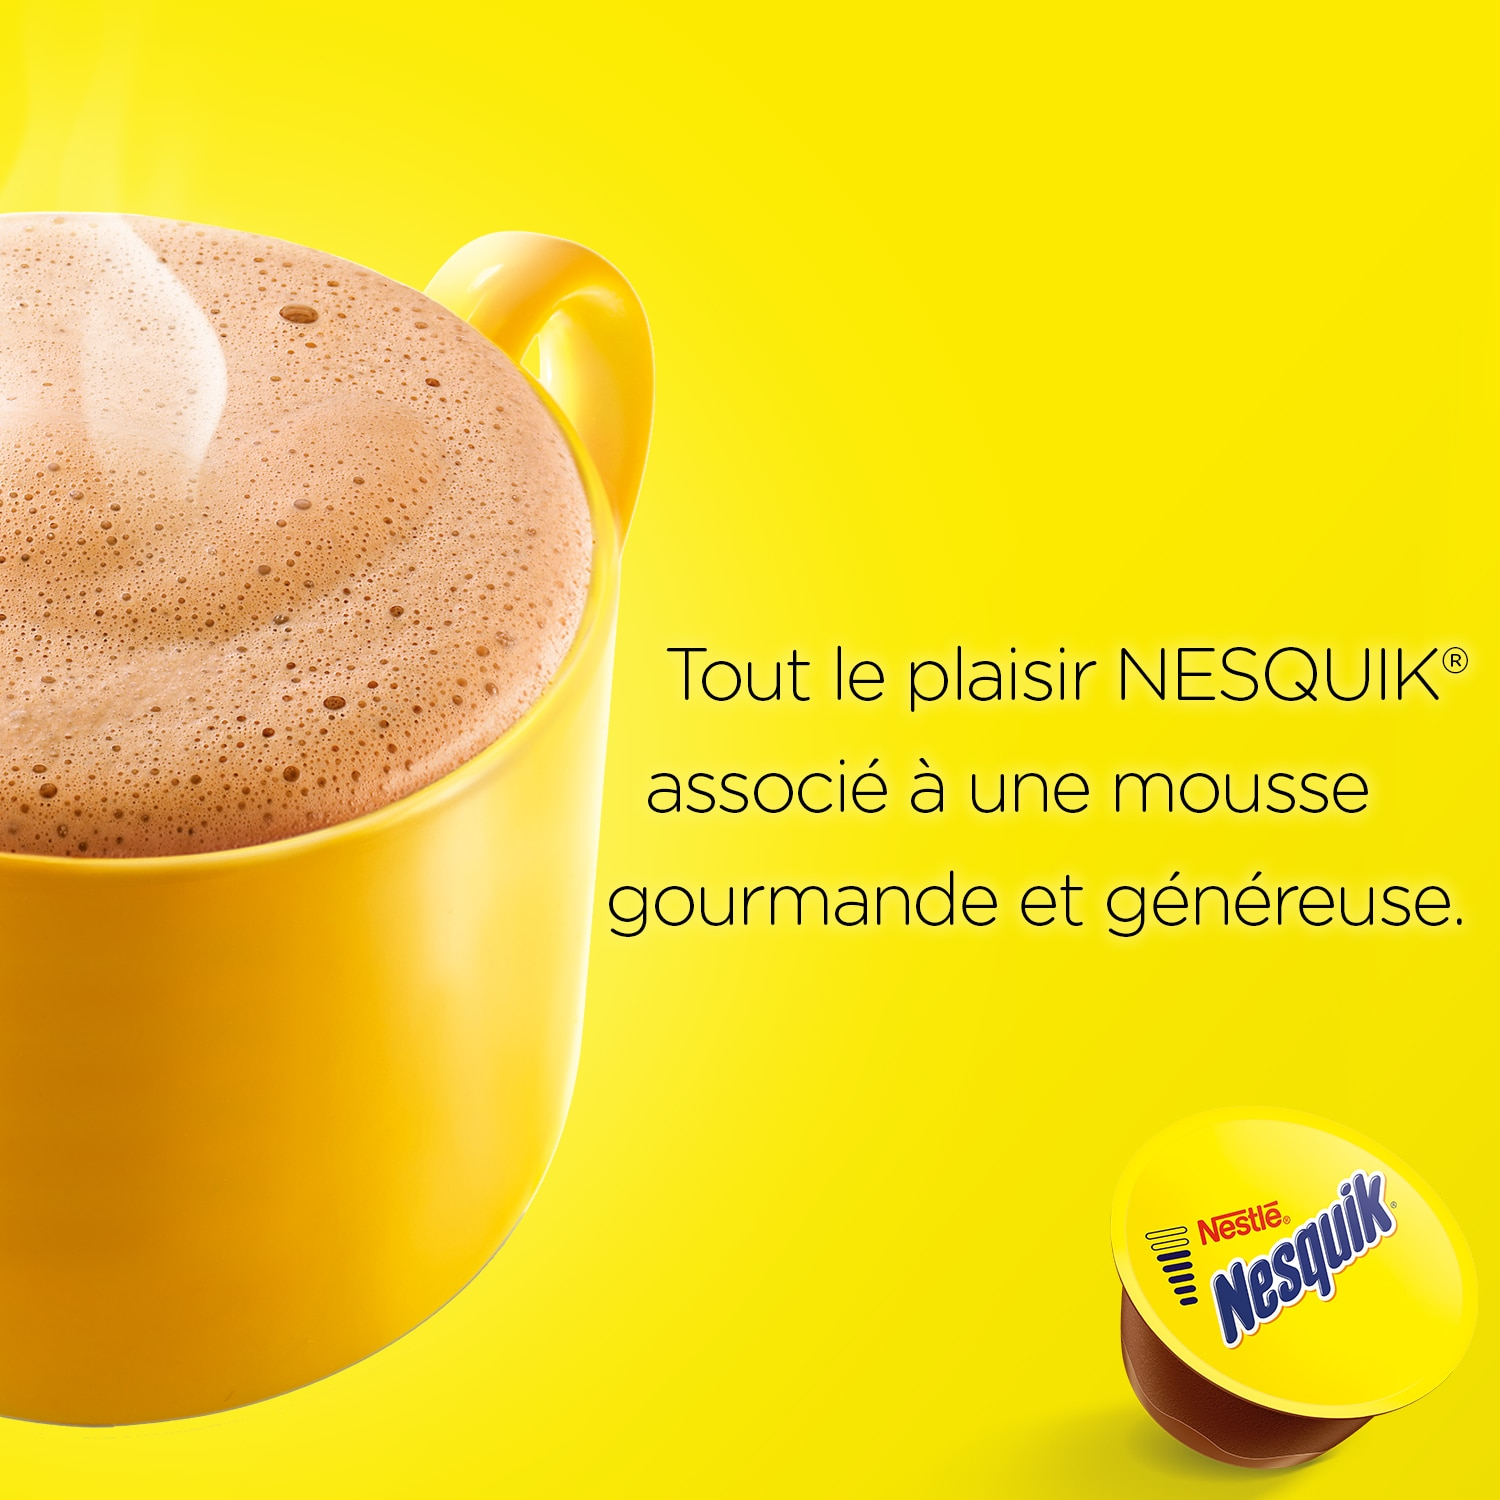 nesquik 16 capsules nescaf dolce gusto. Black Bedroom Furniture Sets. Home Design Ideas